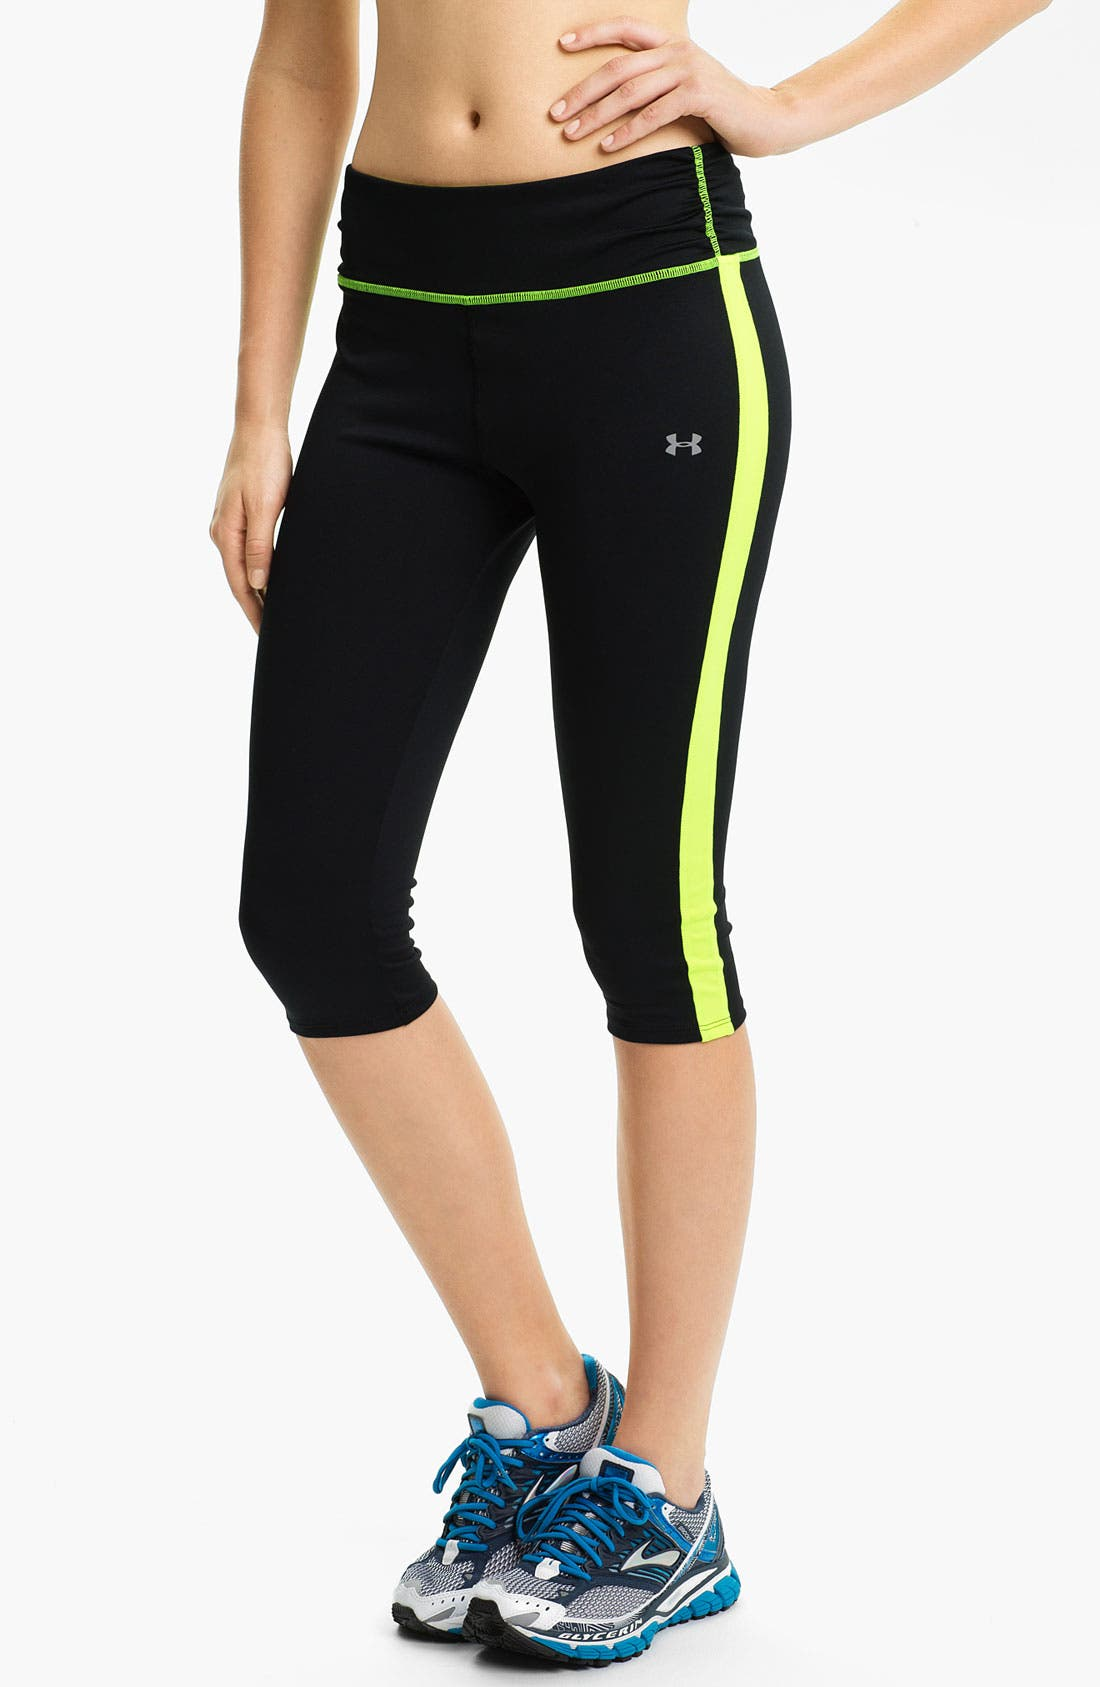 Main Image - Under Armour 'Escape' Capris